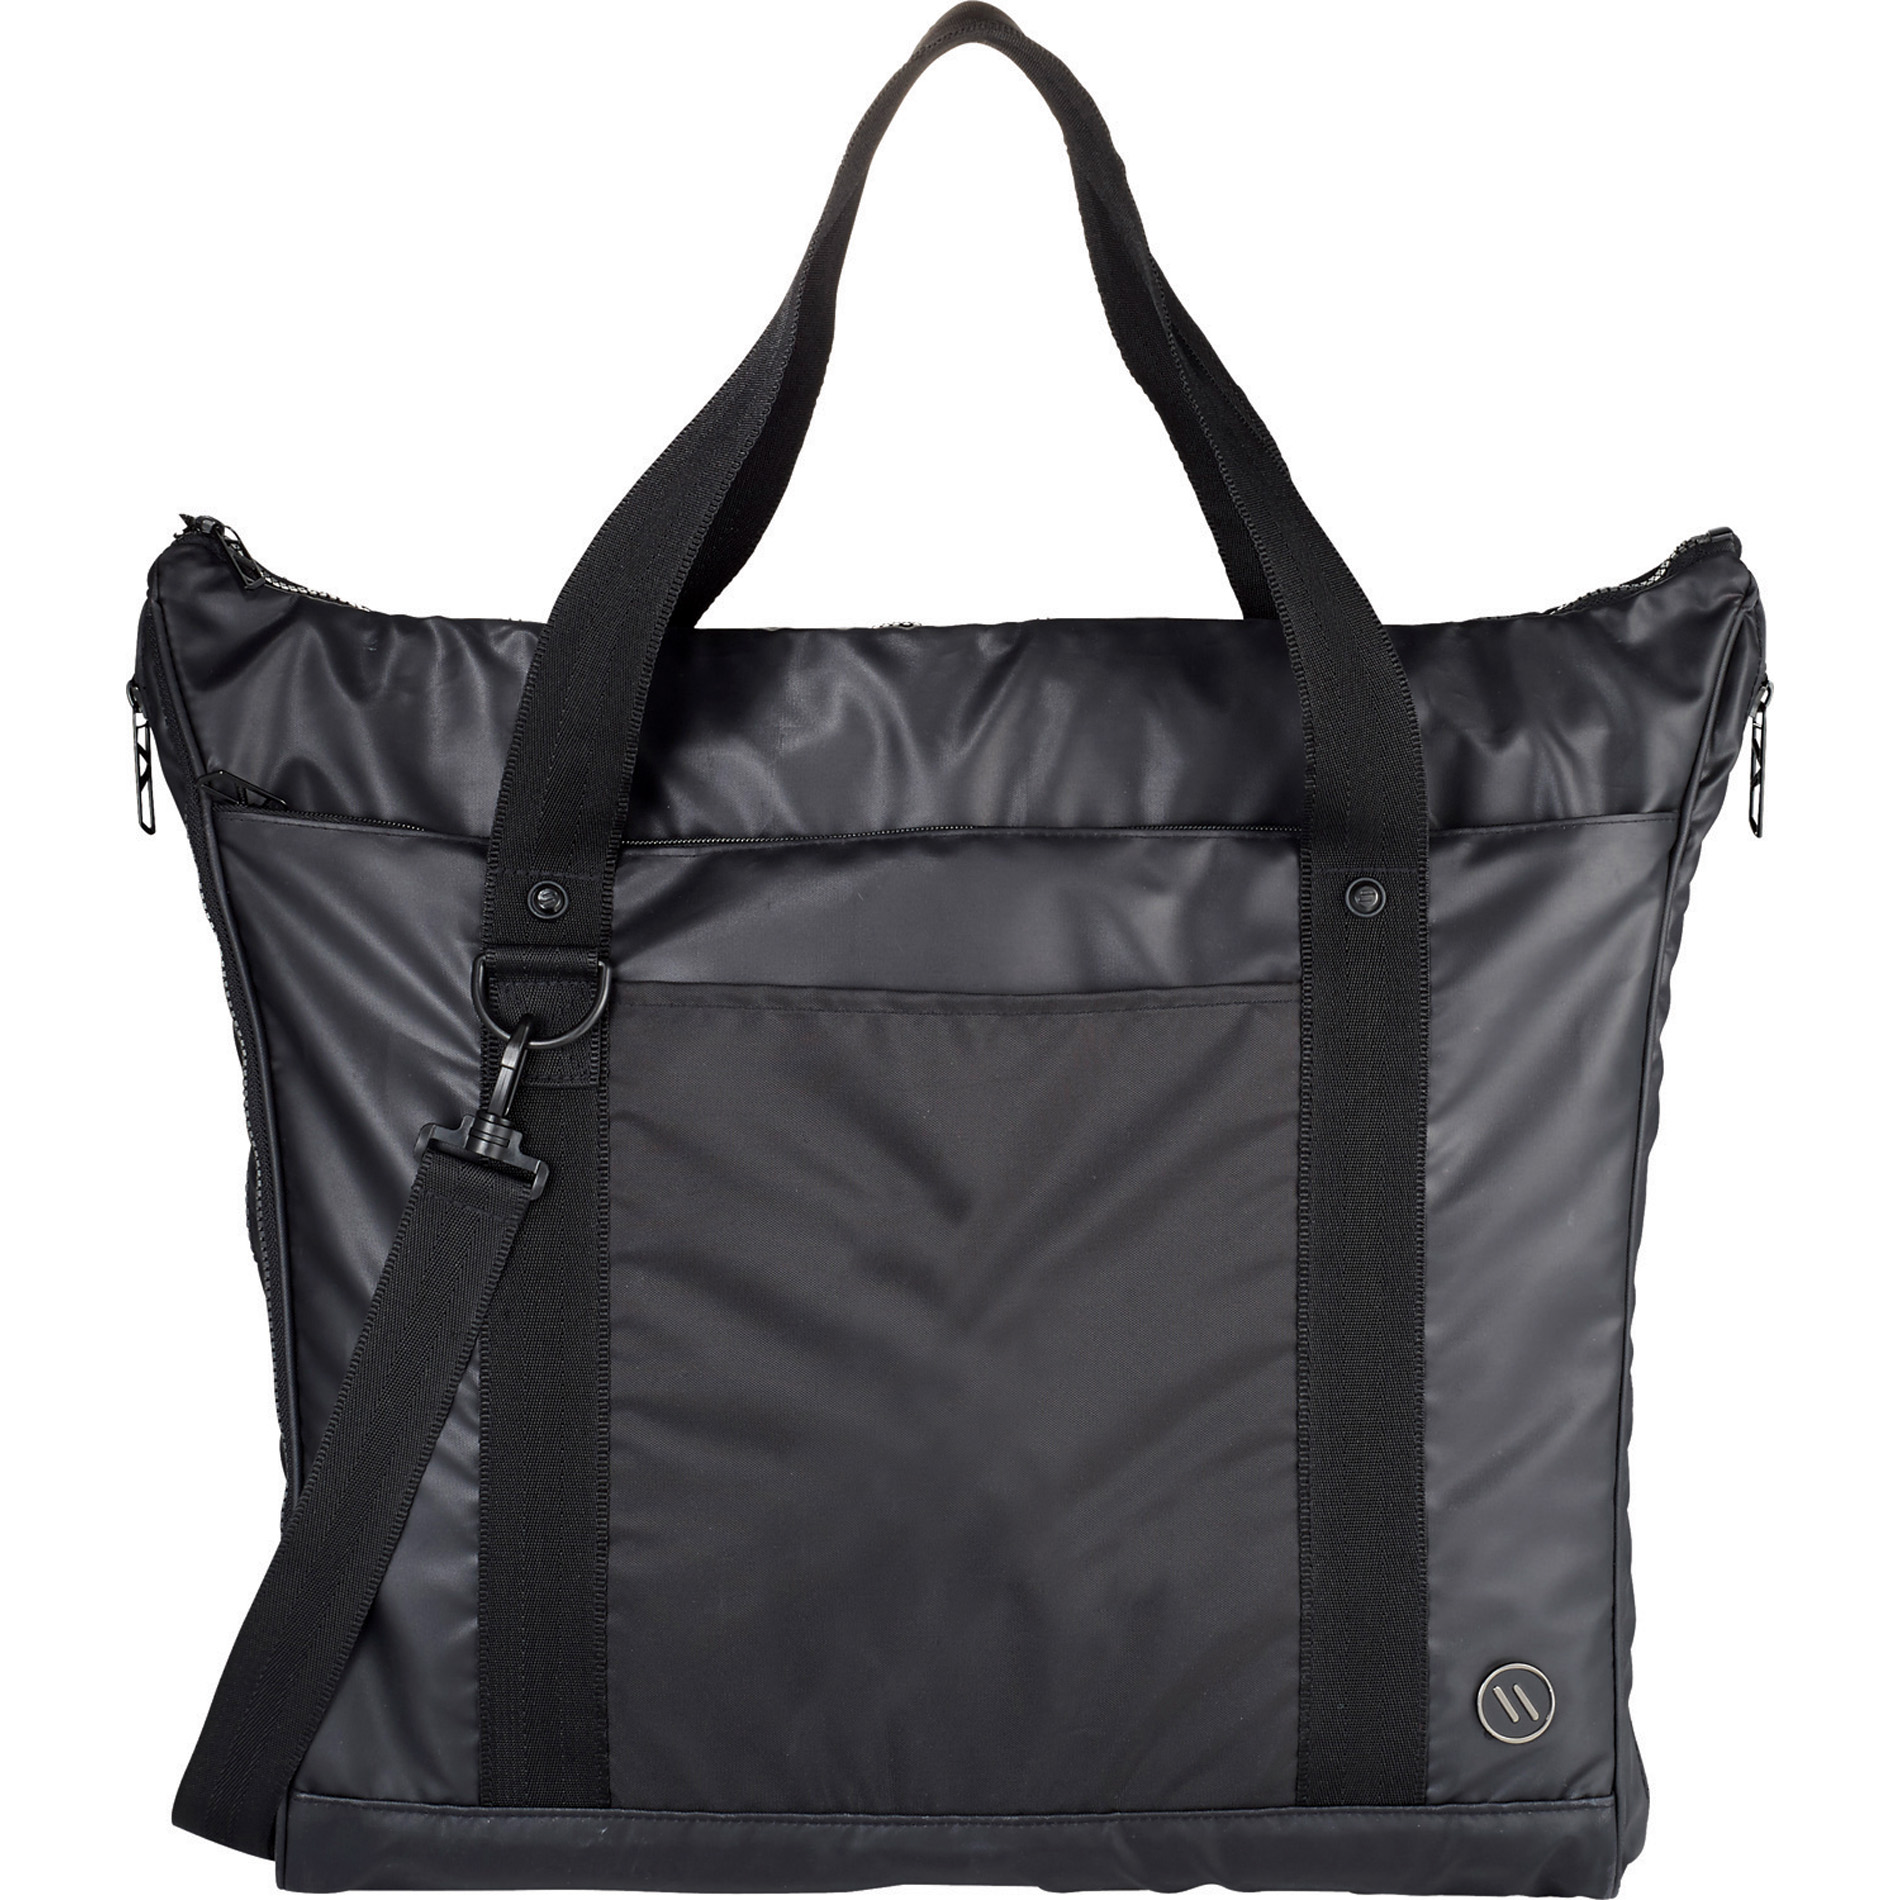 "elleven 0011-89 - 15"" Computer Travel Tote with Garment Bag"